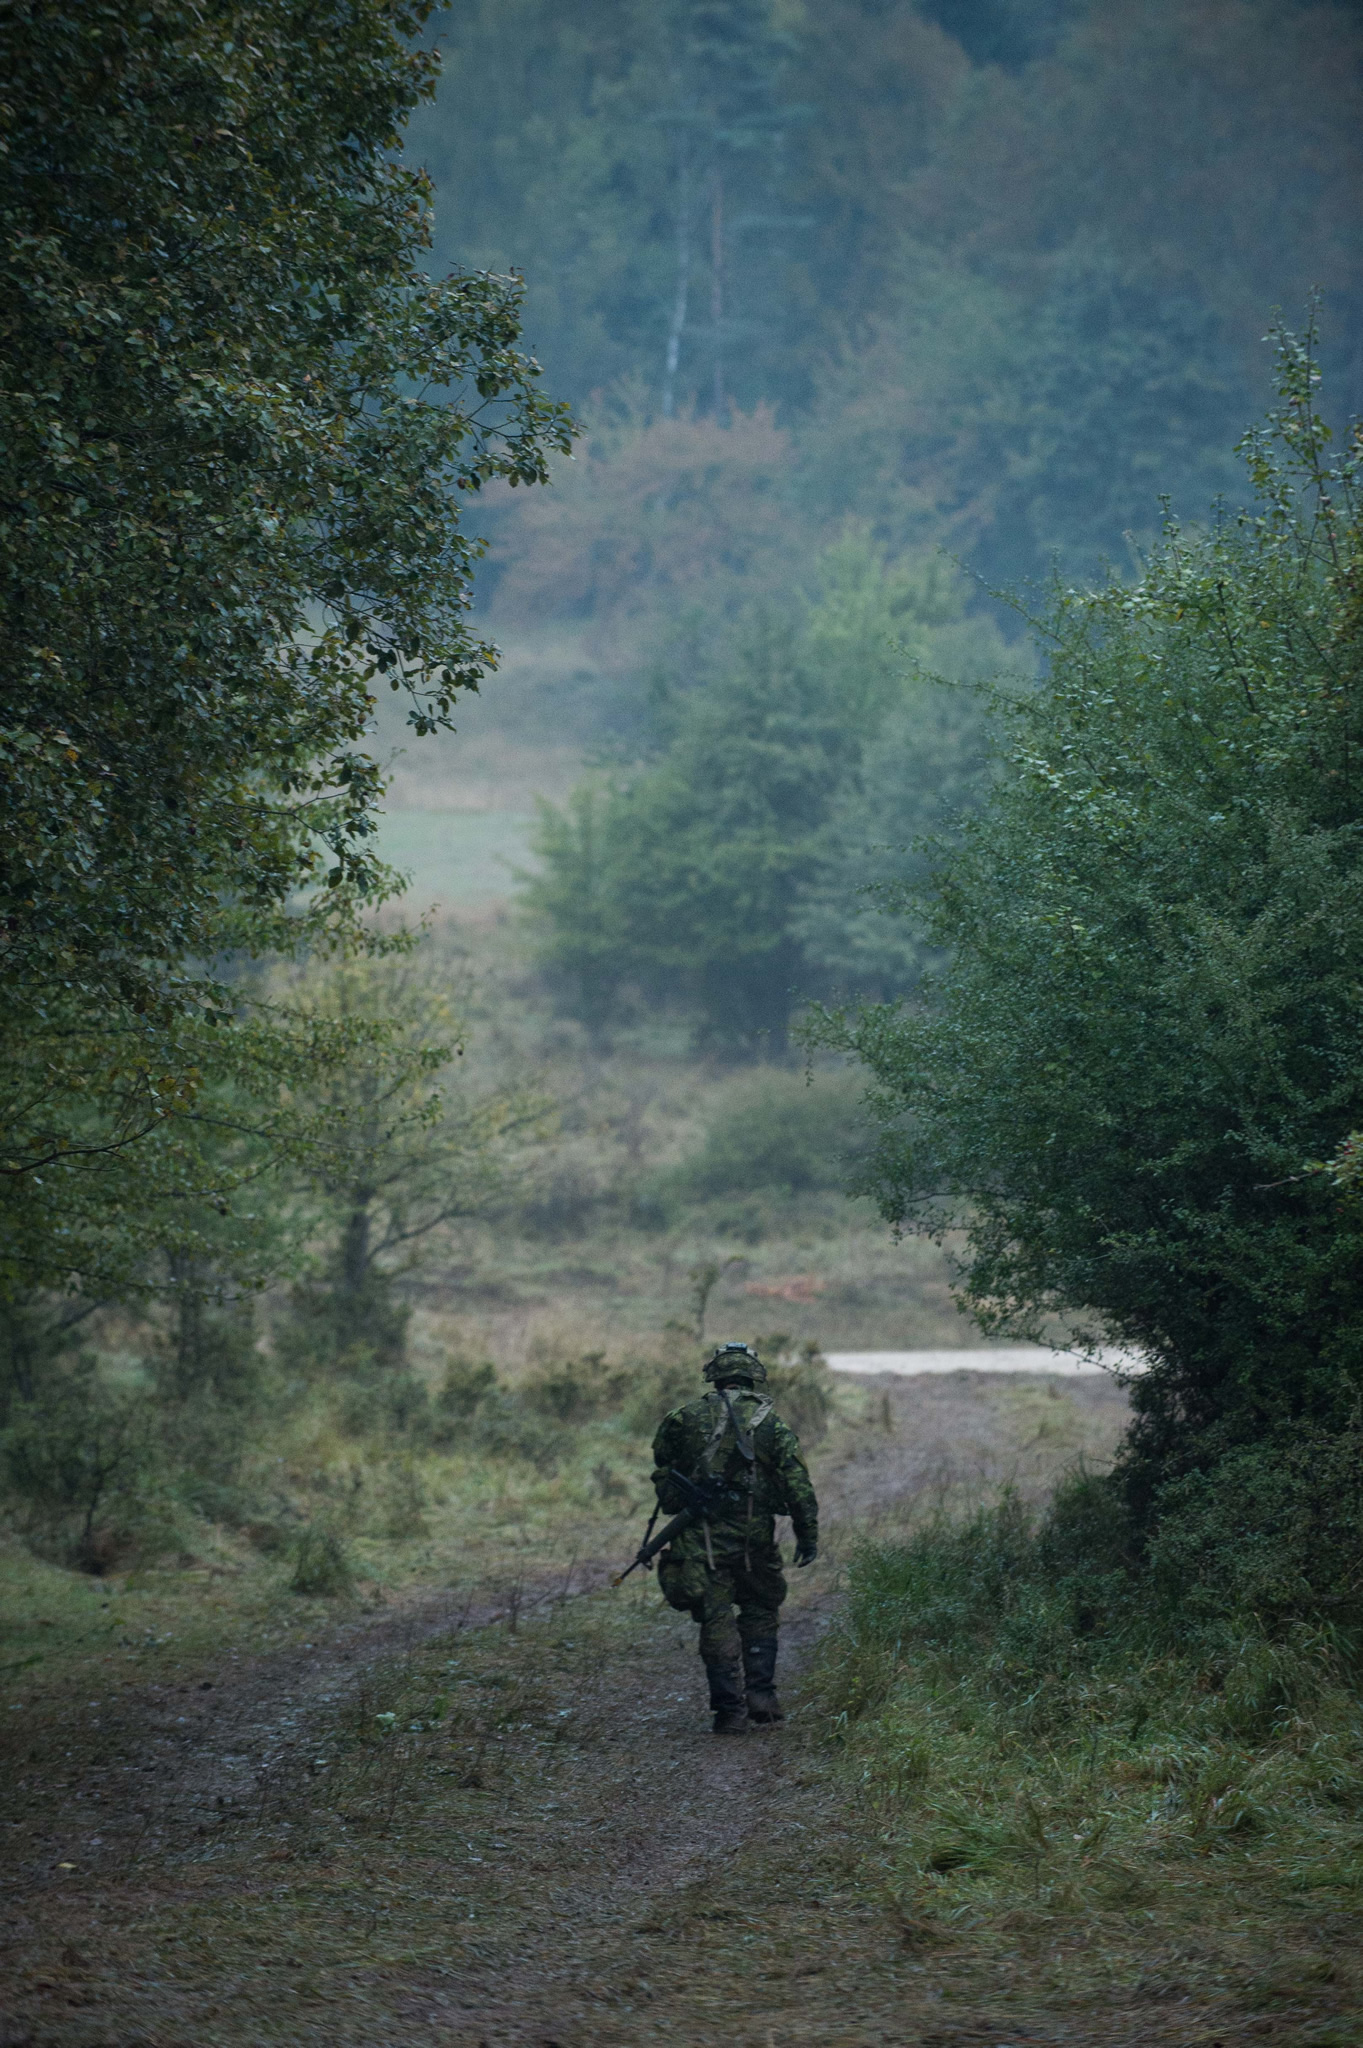 A soldier on a path surrounded by forest.